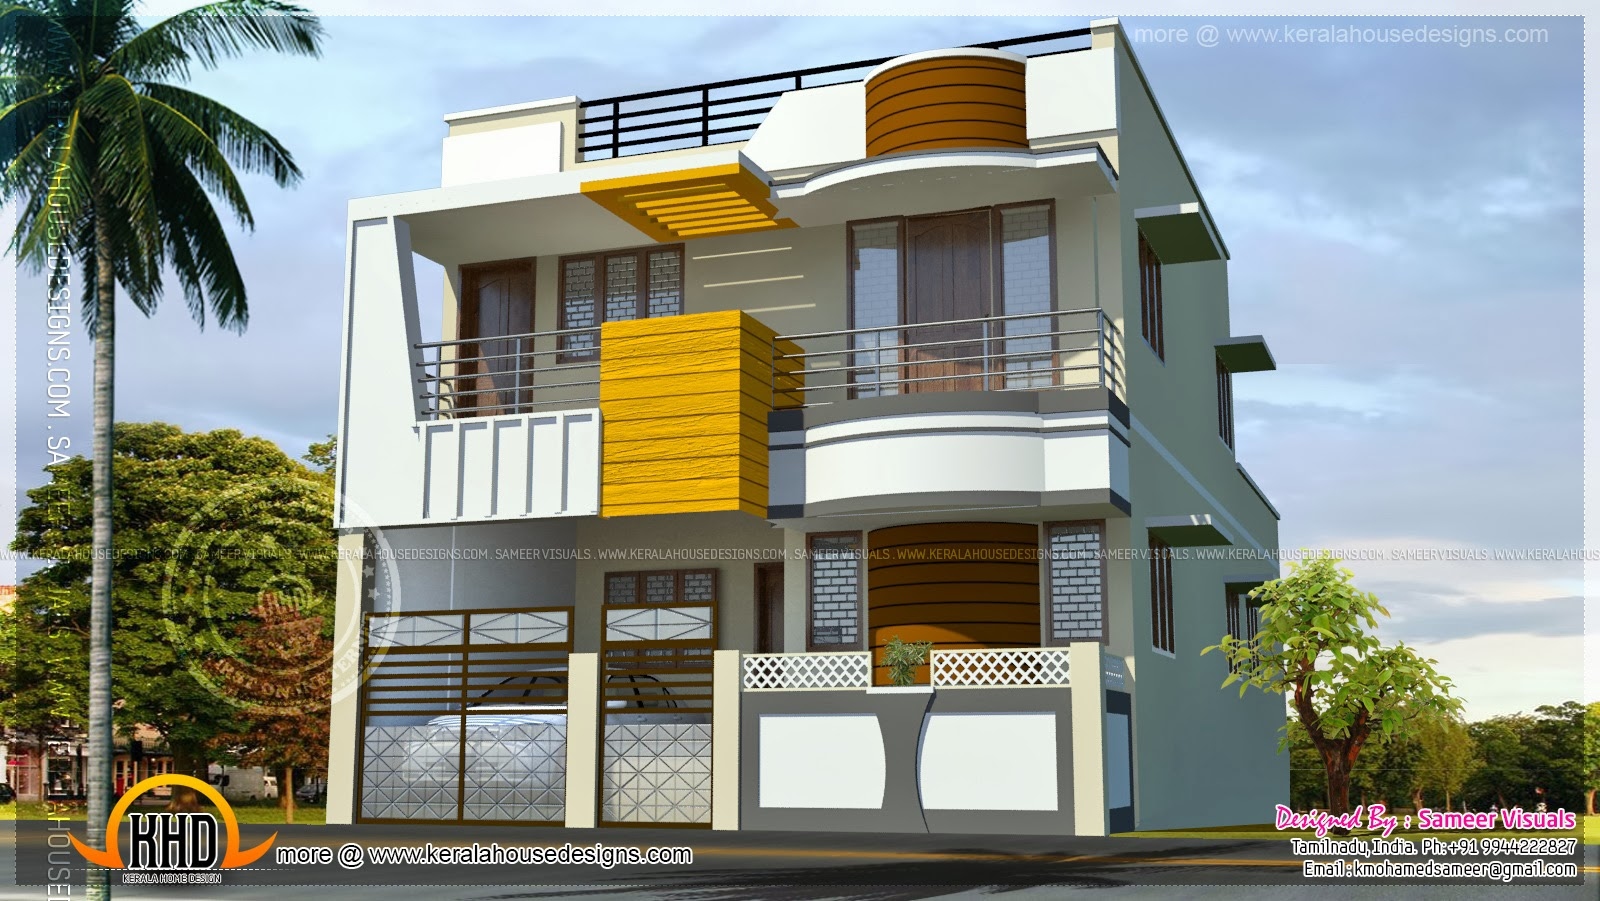 Modern house plans in indian style house plan 2017 for Home designs indian style